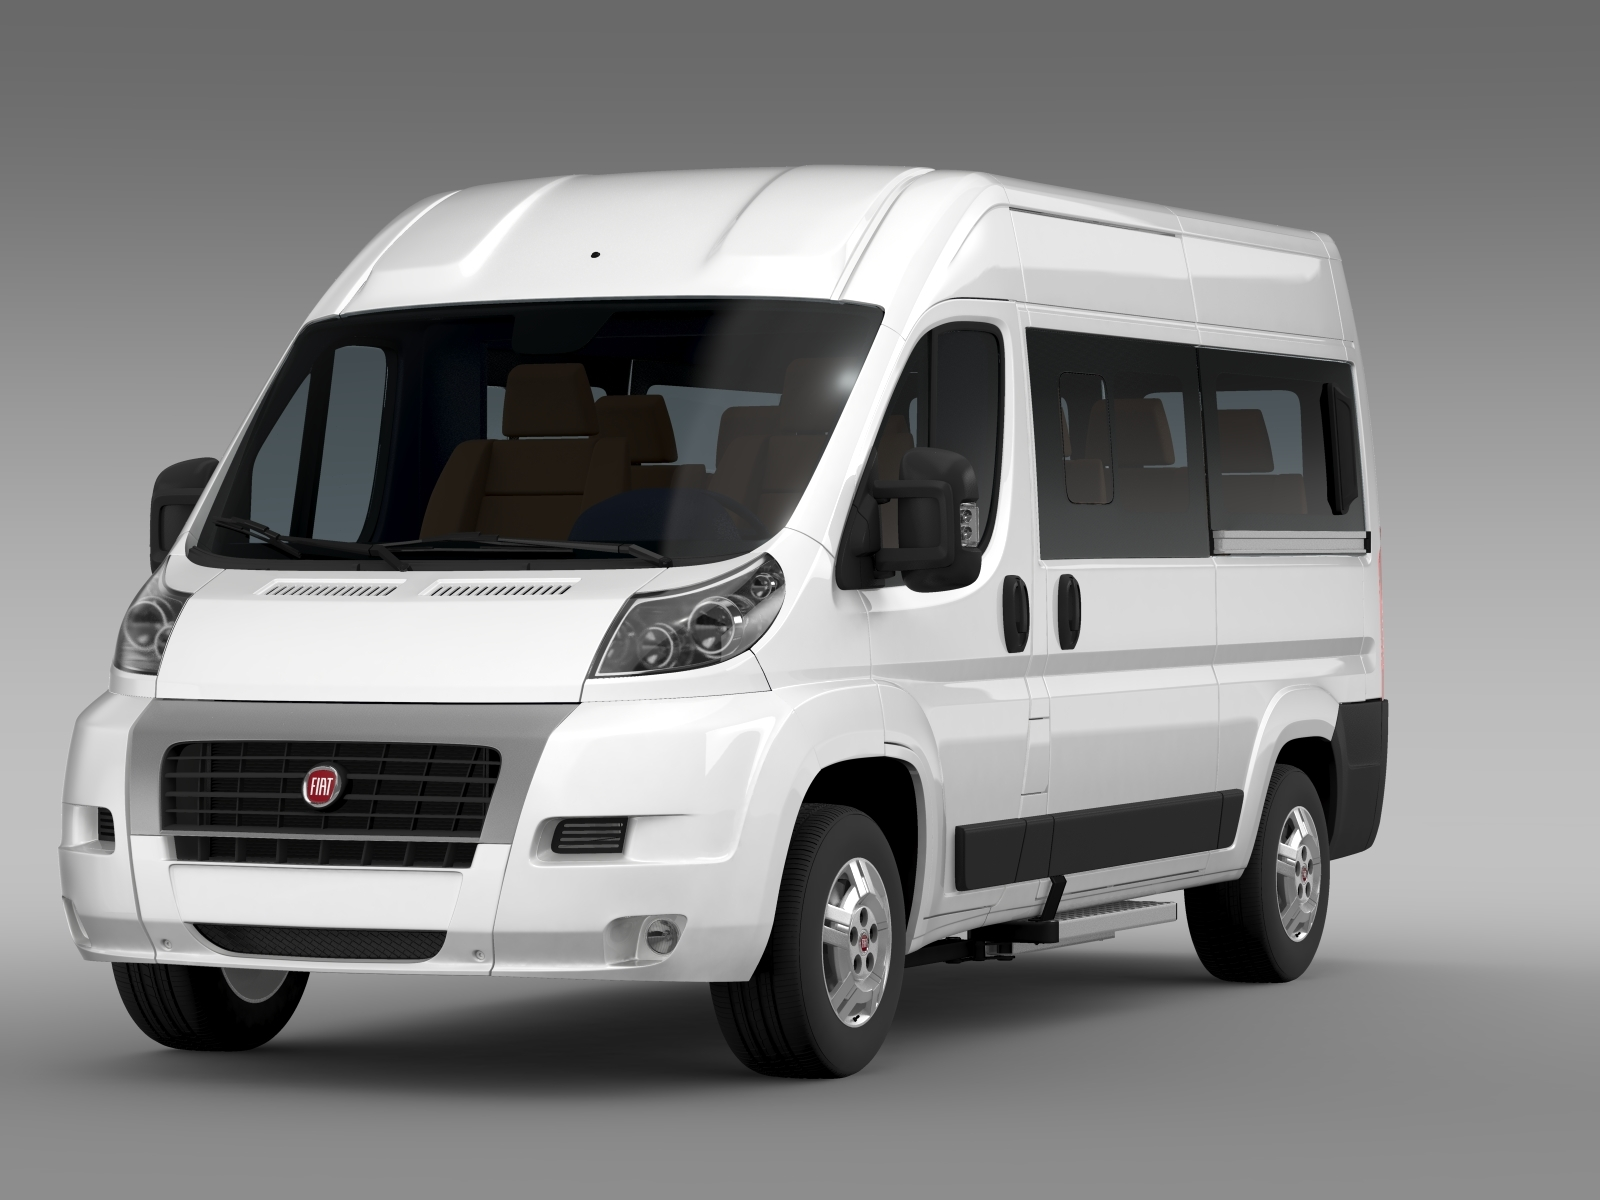 fiat ducato panorama l2h2 2006 2014 by creator 3d 3docean. Black Bedroom Furniture Sets. Home Design Ideas